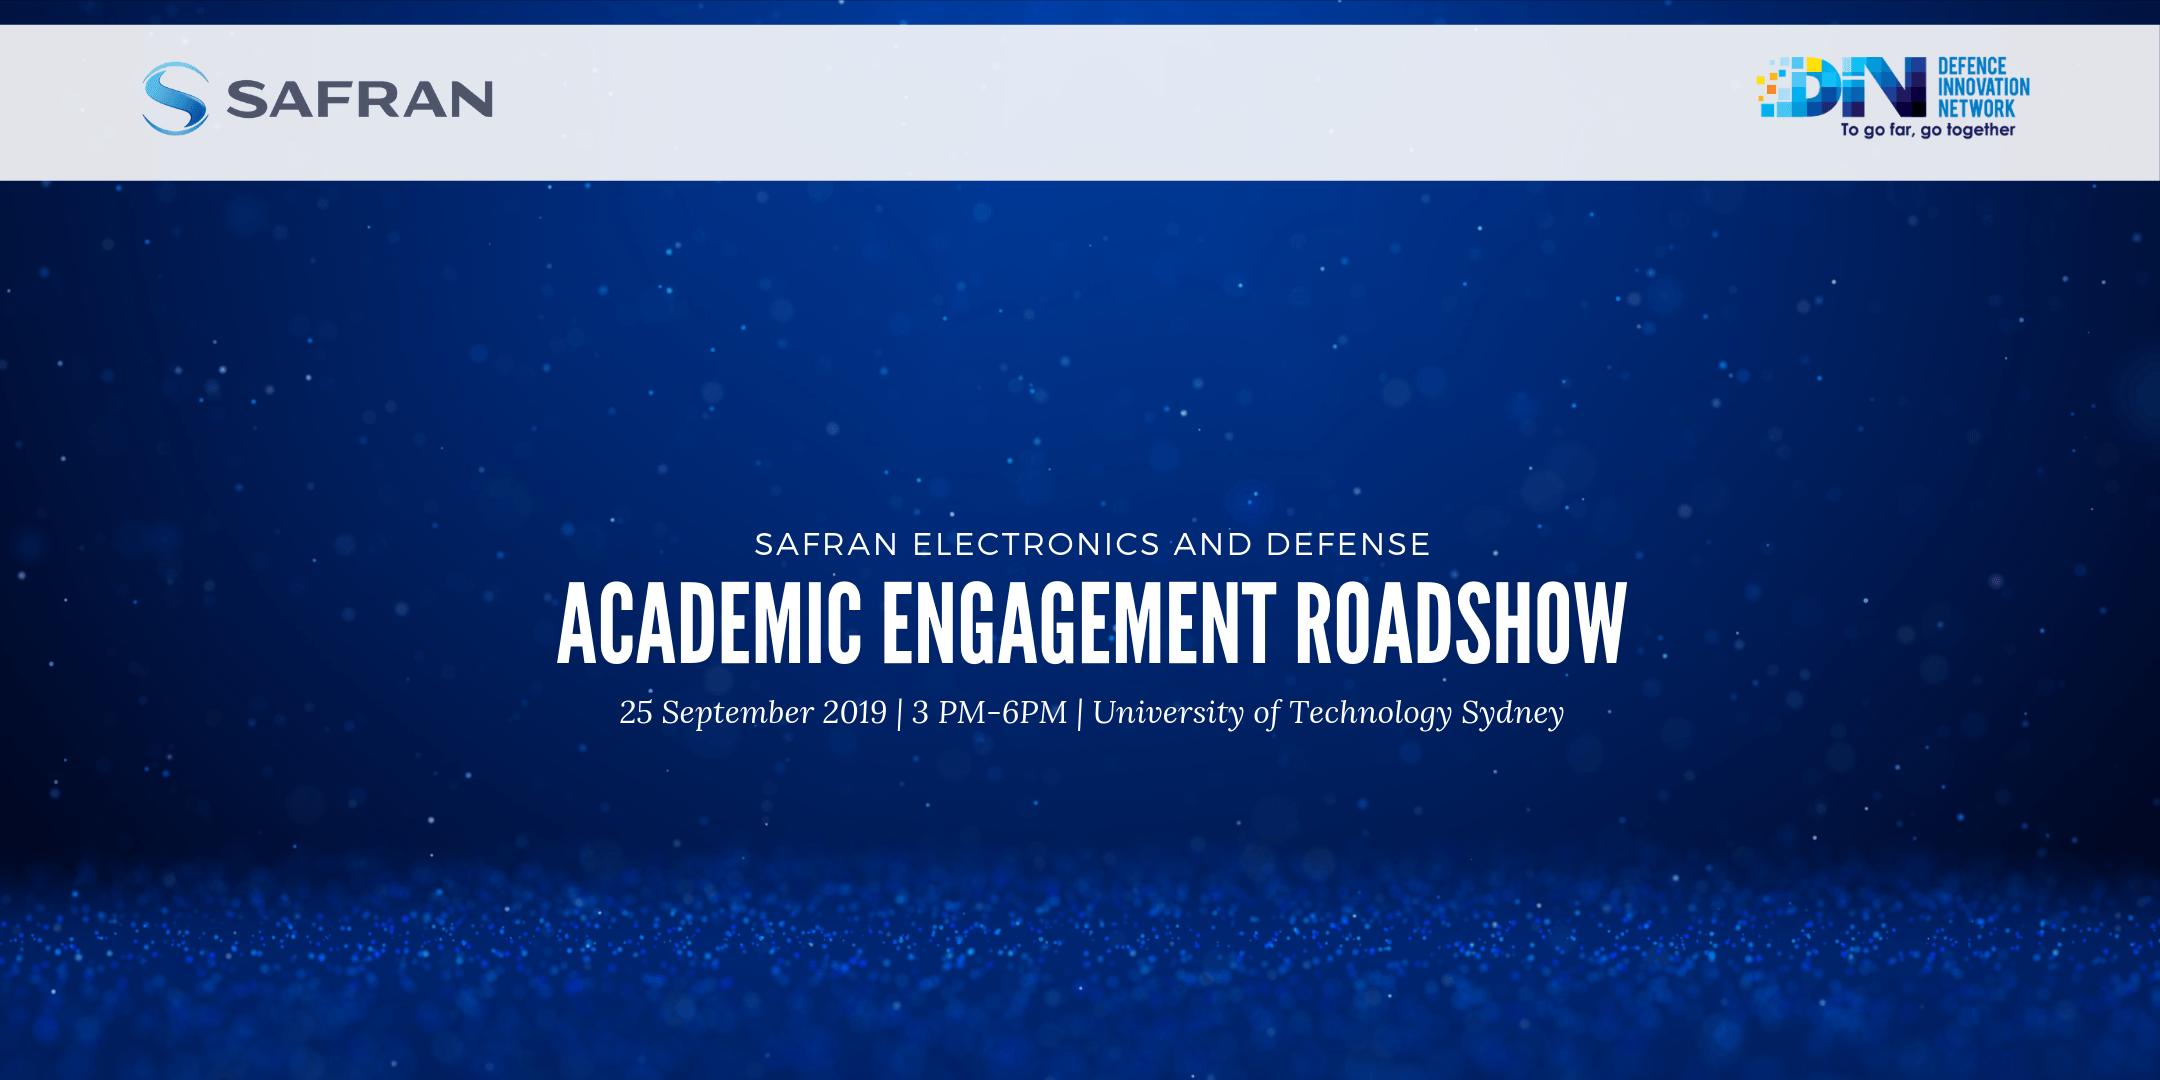 Safran Academic Engagement Roadshow – 25 September 2019